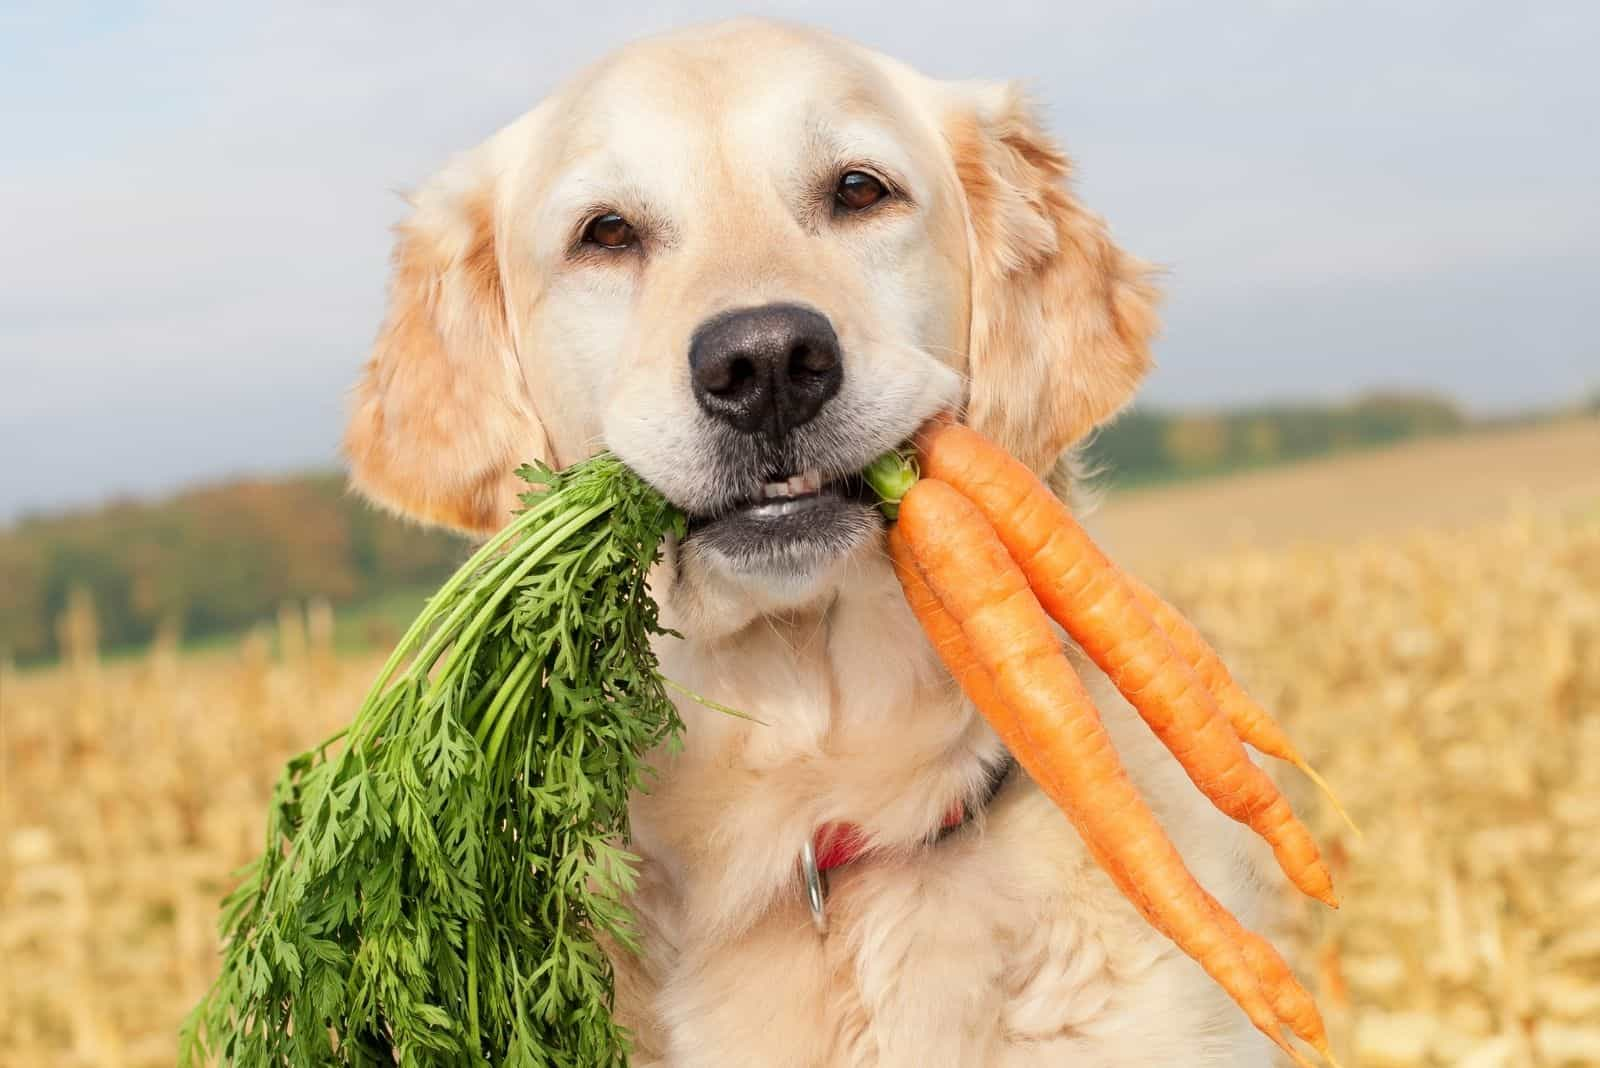 golden retriever dog holding carrots with its mouth